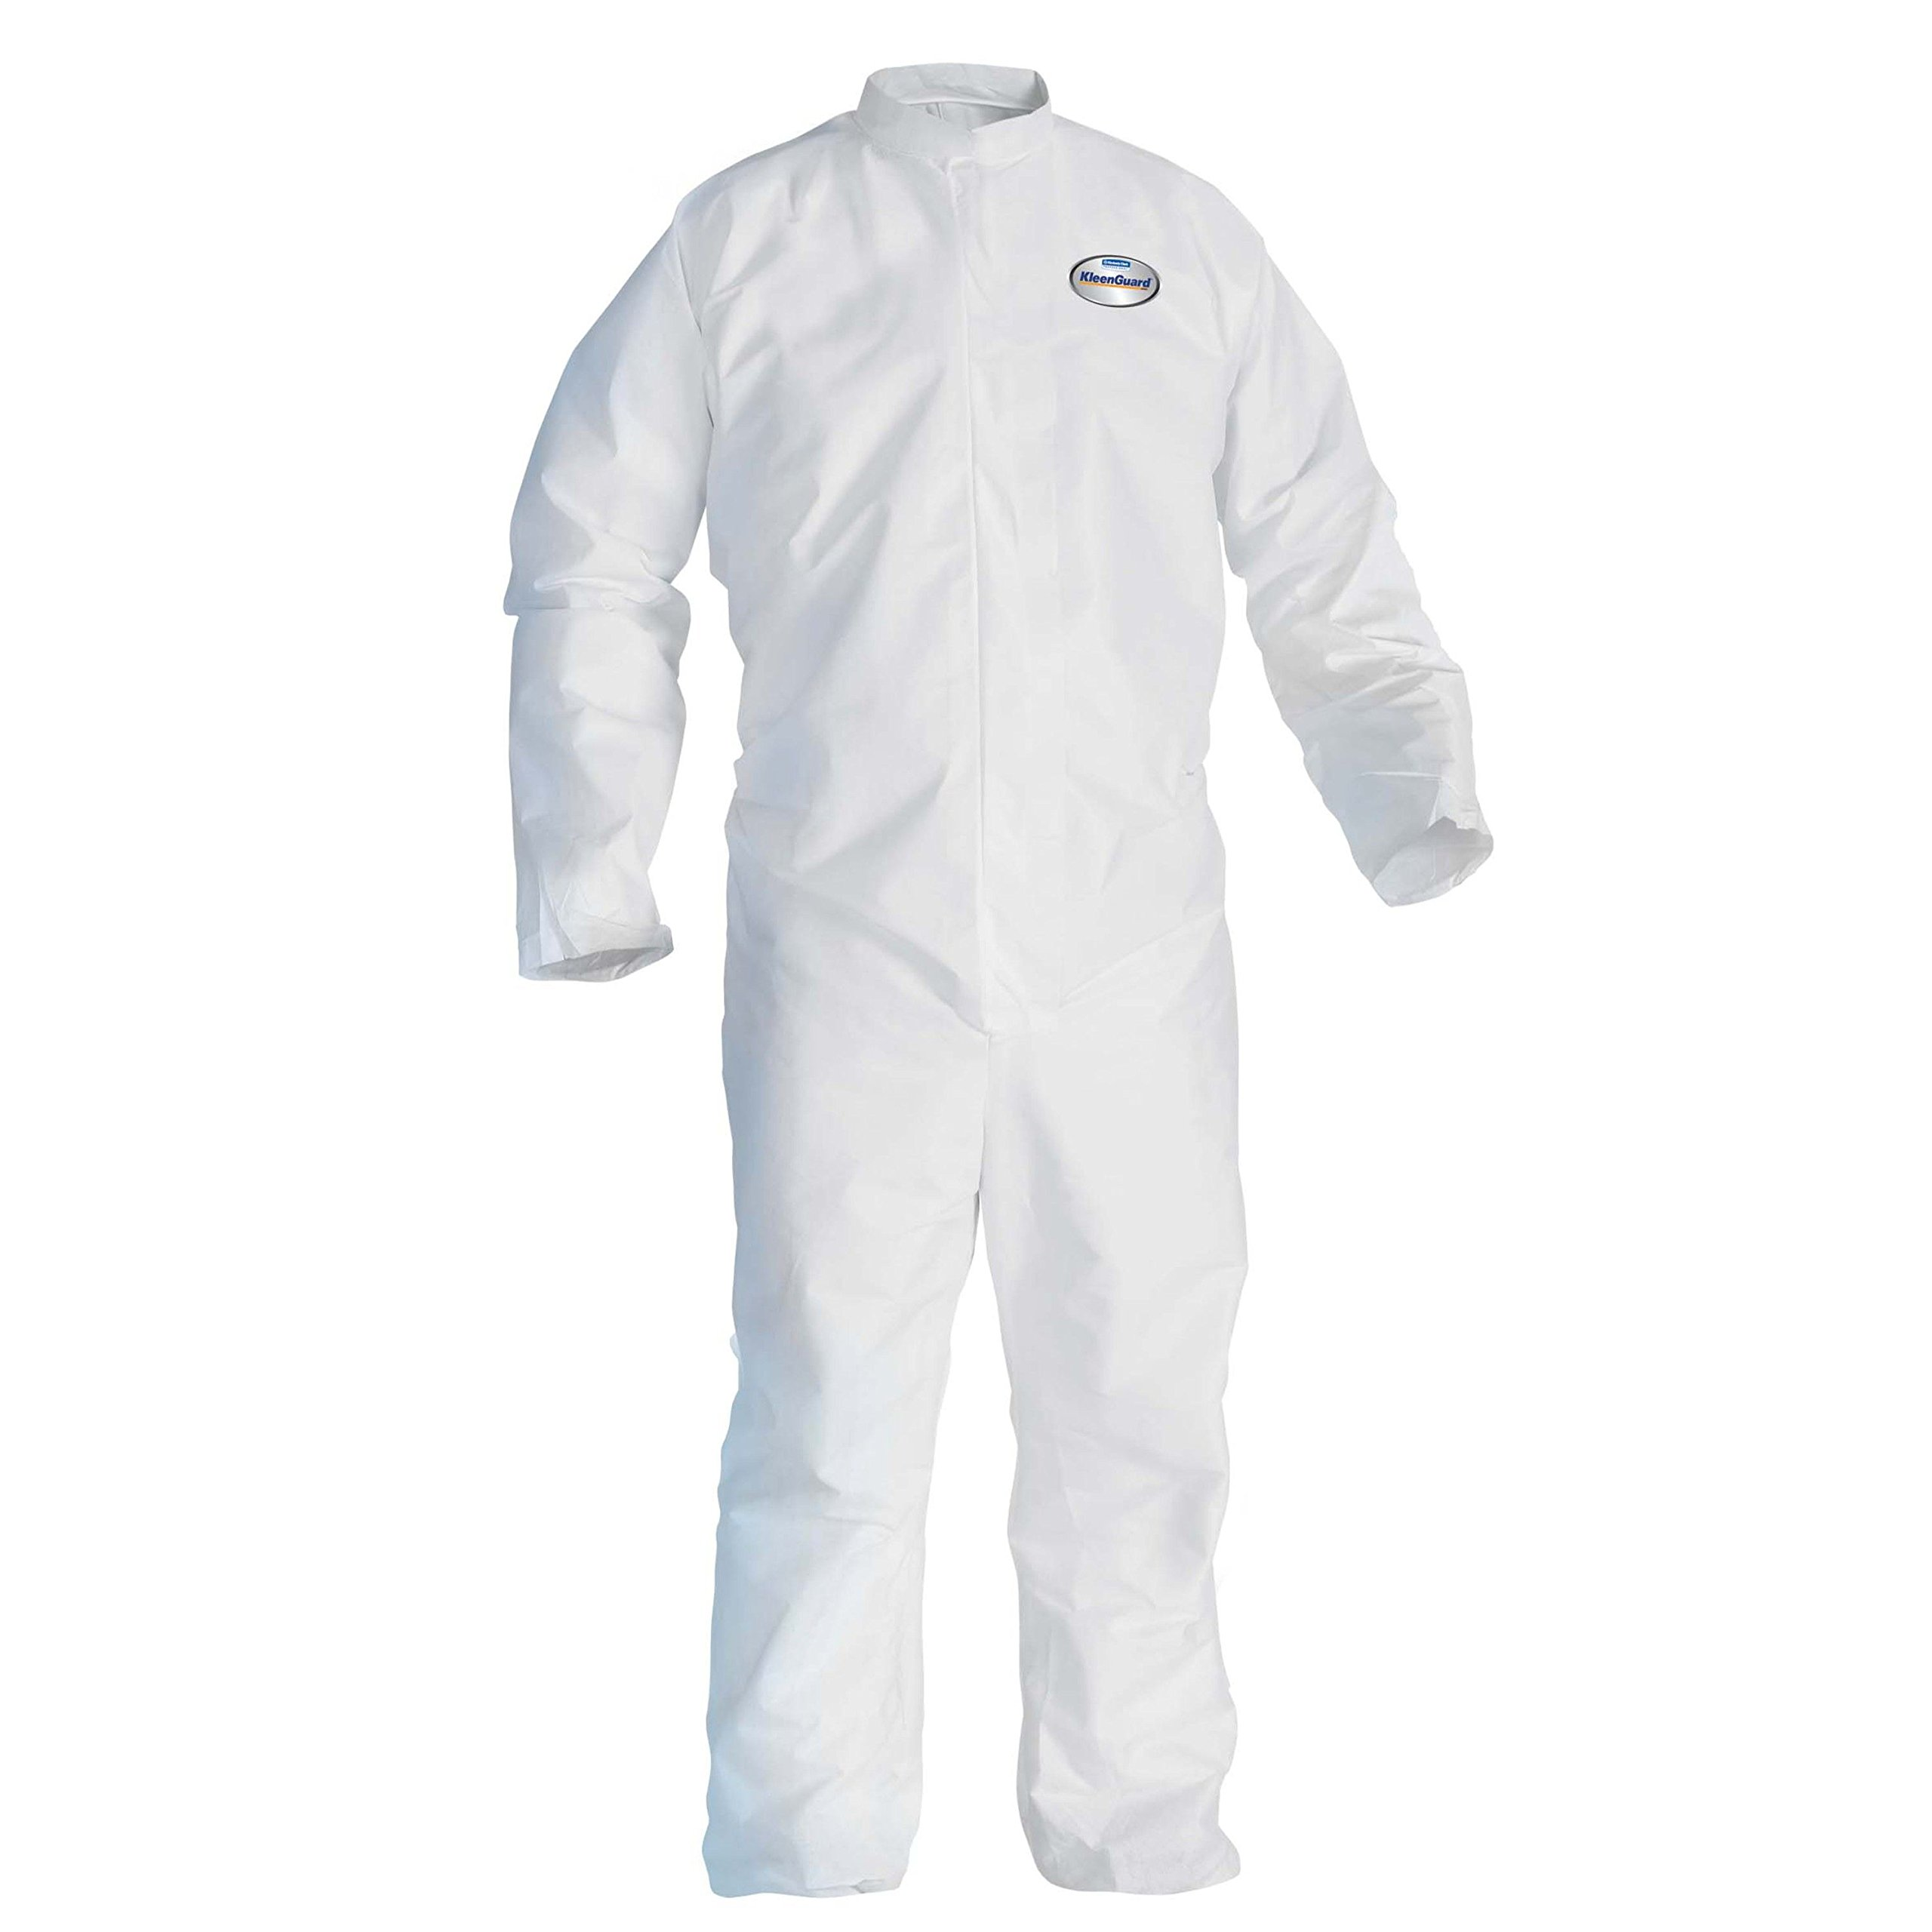 Kleenguard 46003 A30 Breathable Splash Particle Protection Coveralls, 0.5 Height, 16 Length, 12 Width, Micro Force barrier SMS fabric, White, Large (Pack of 25)